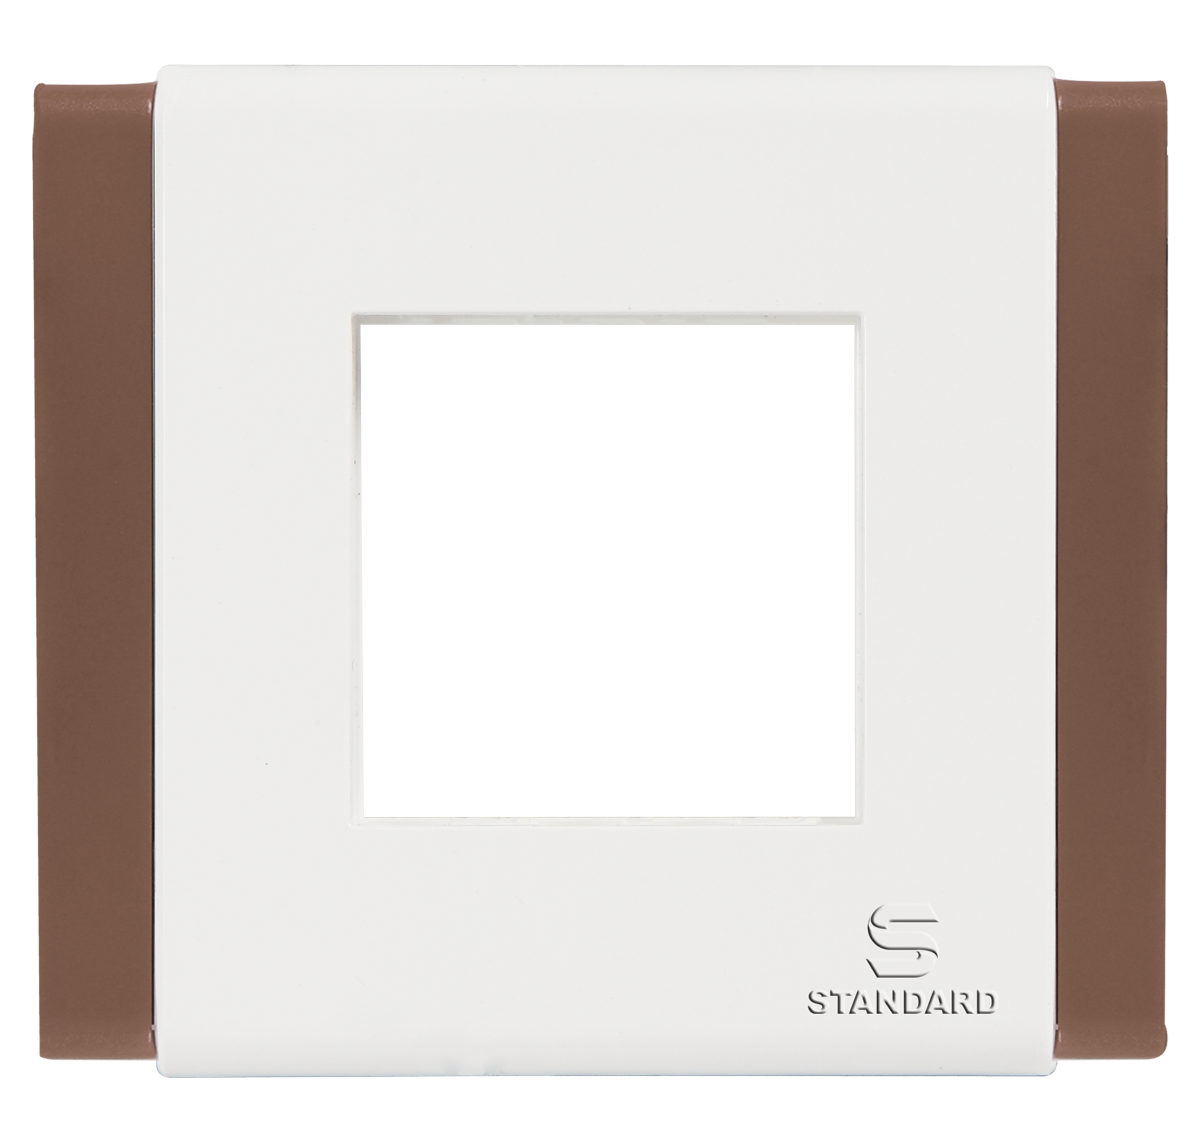 Standard - 2-m-caramel-brown-cover-plate